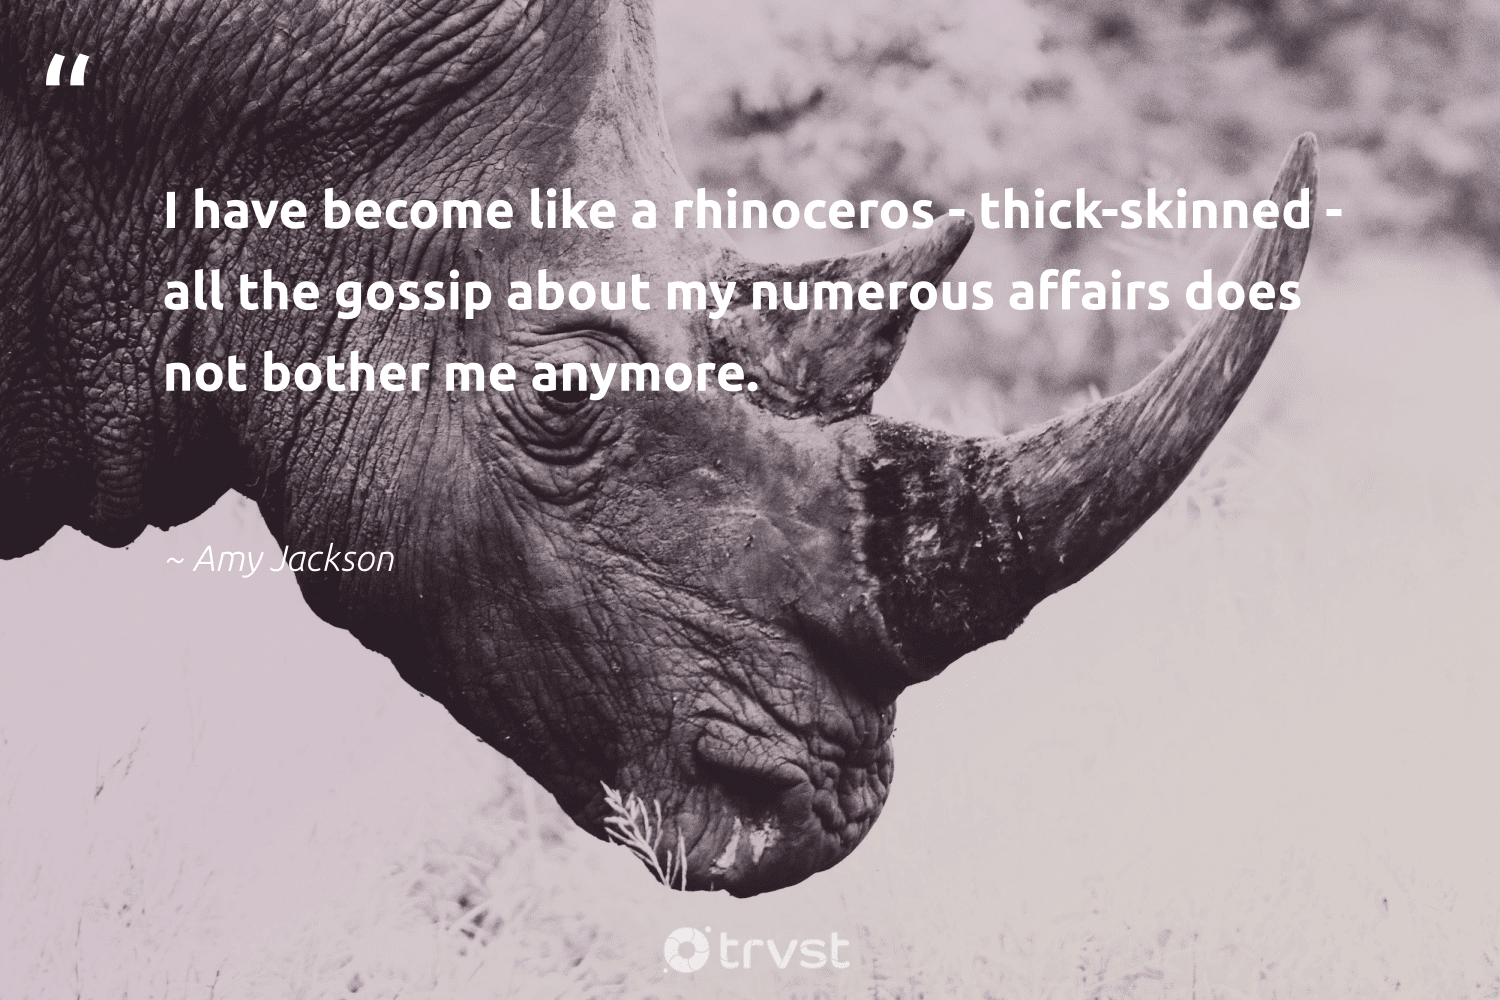 """""""I have become like a rhinoceros - thick-skinned - all the gossip about my numerous affairs does not bother me anymore.""""  - Amy Jackson #trvst #quotes #rhinoceros #wildlifeprotection #beinspired #protectnature #socialimpact #bigfive #impact #ourplanetdaily #collectiveaction #splendidanimals"""